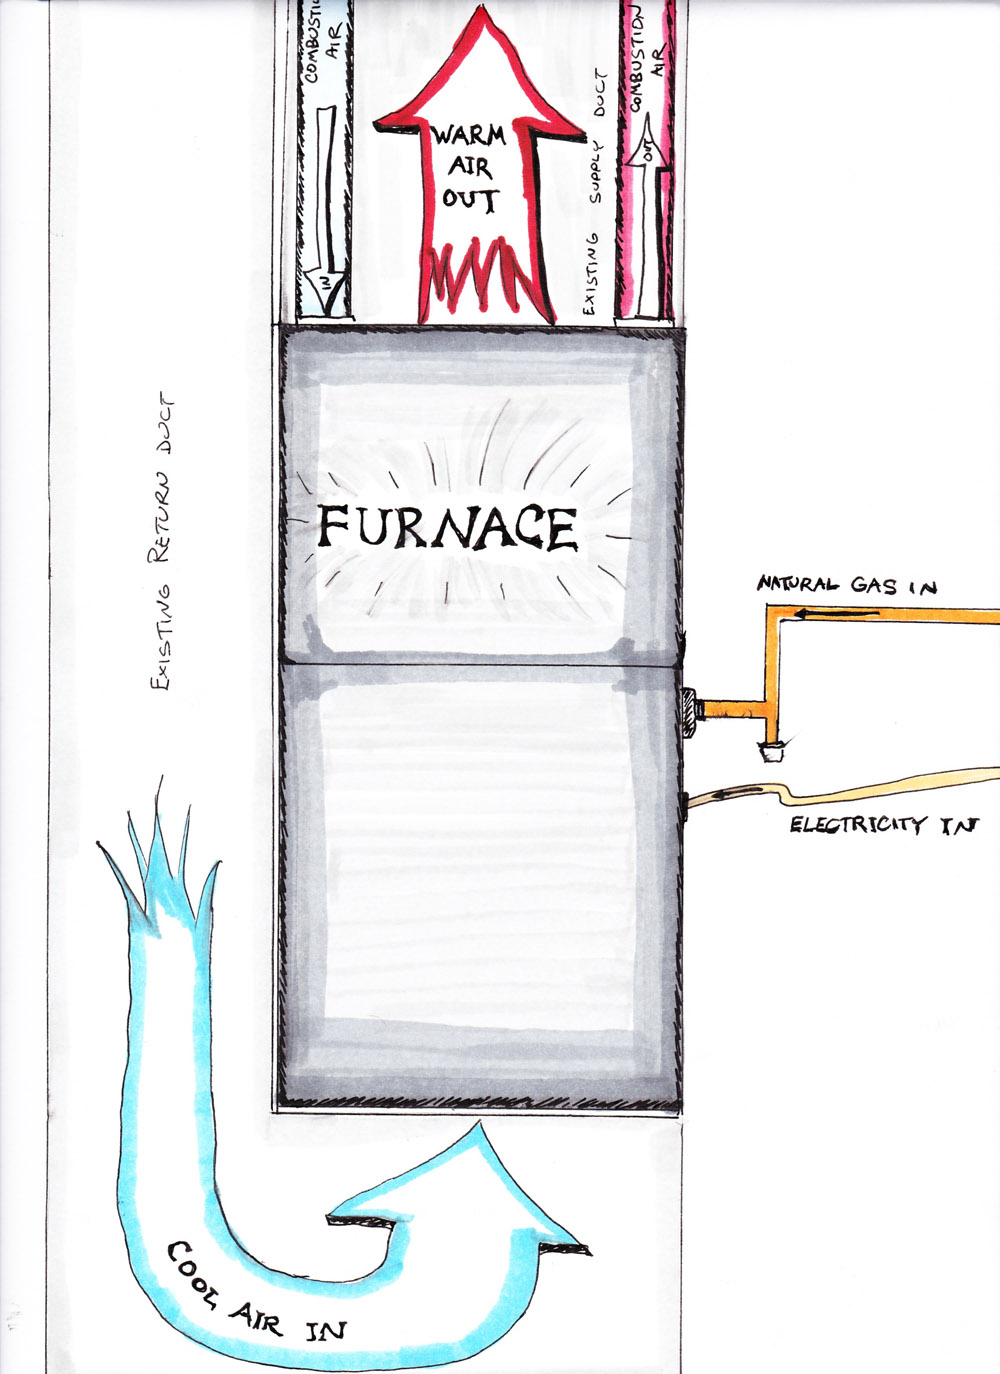 Garage Heater Cost To Run How To Replace Your Own Furnace Mr Money Mustache